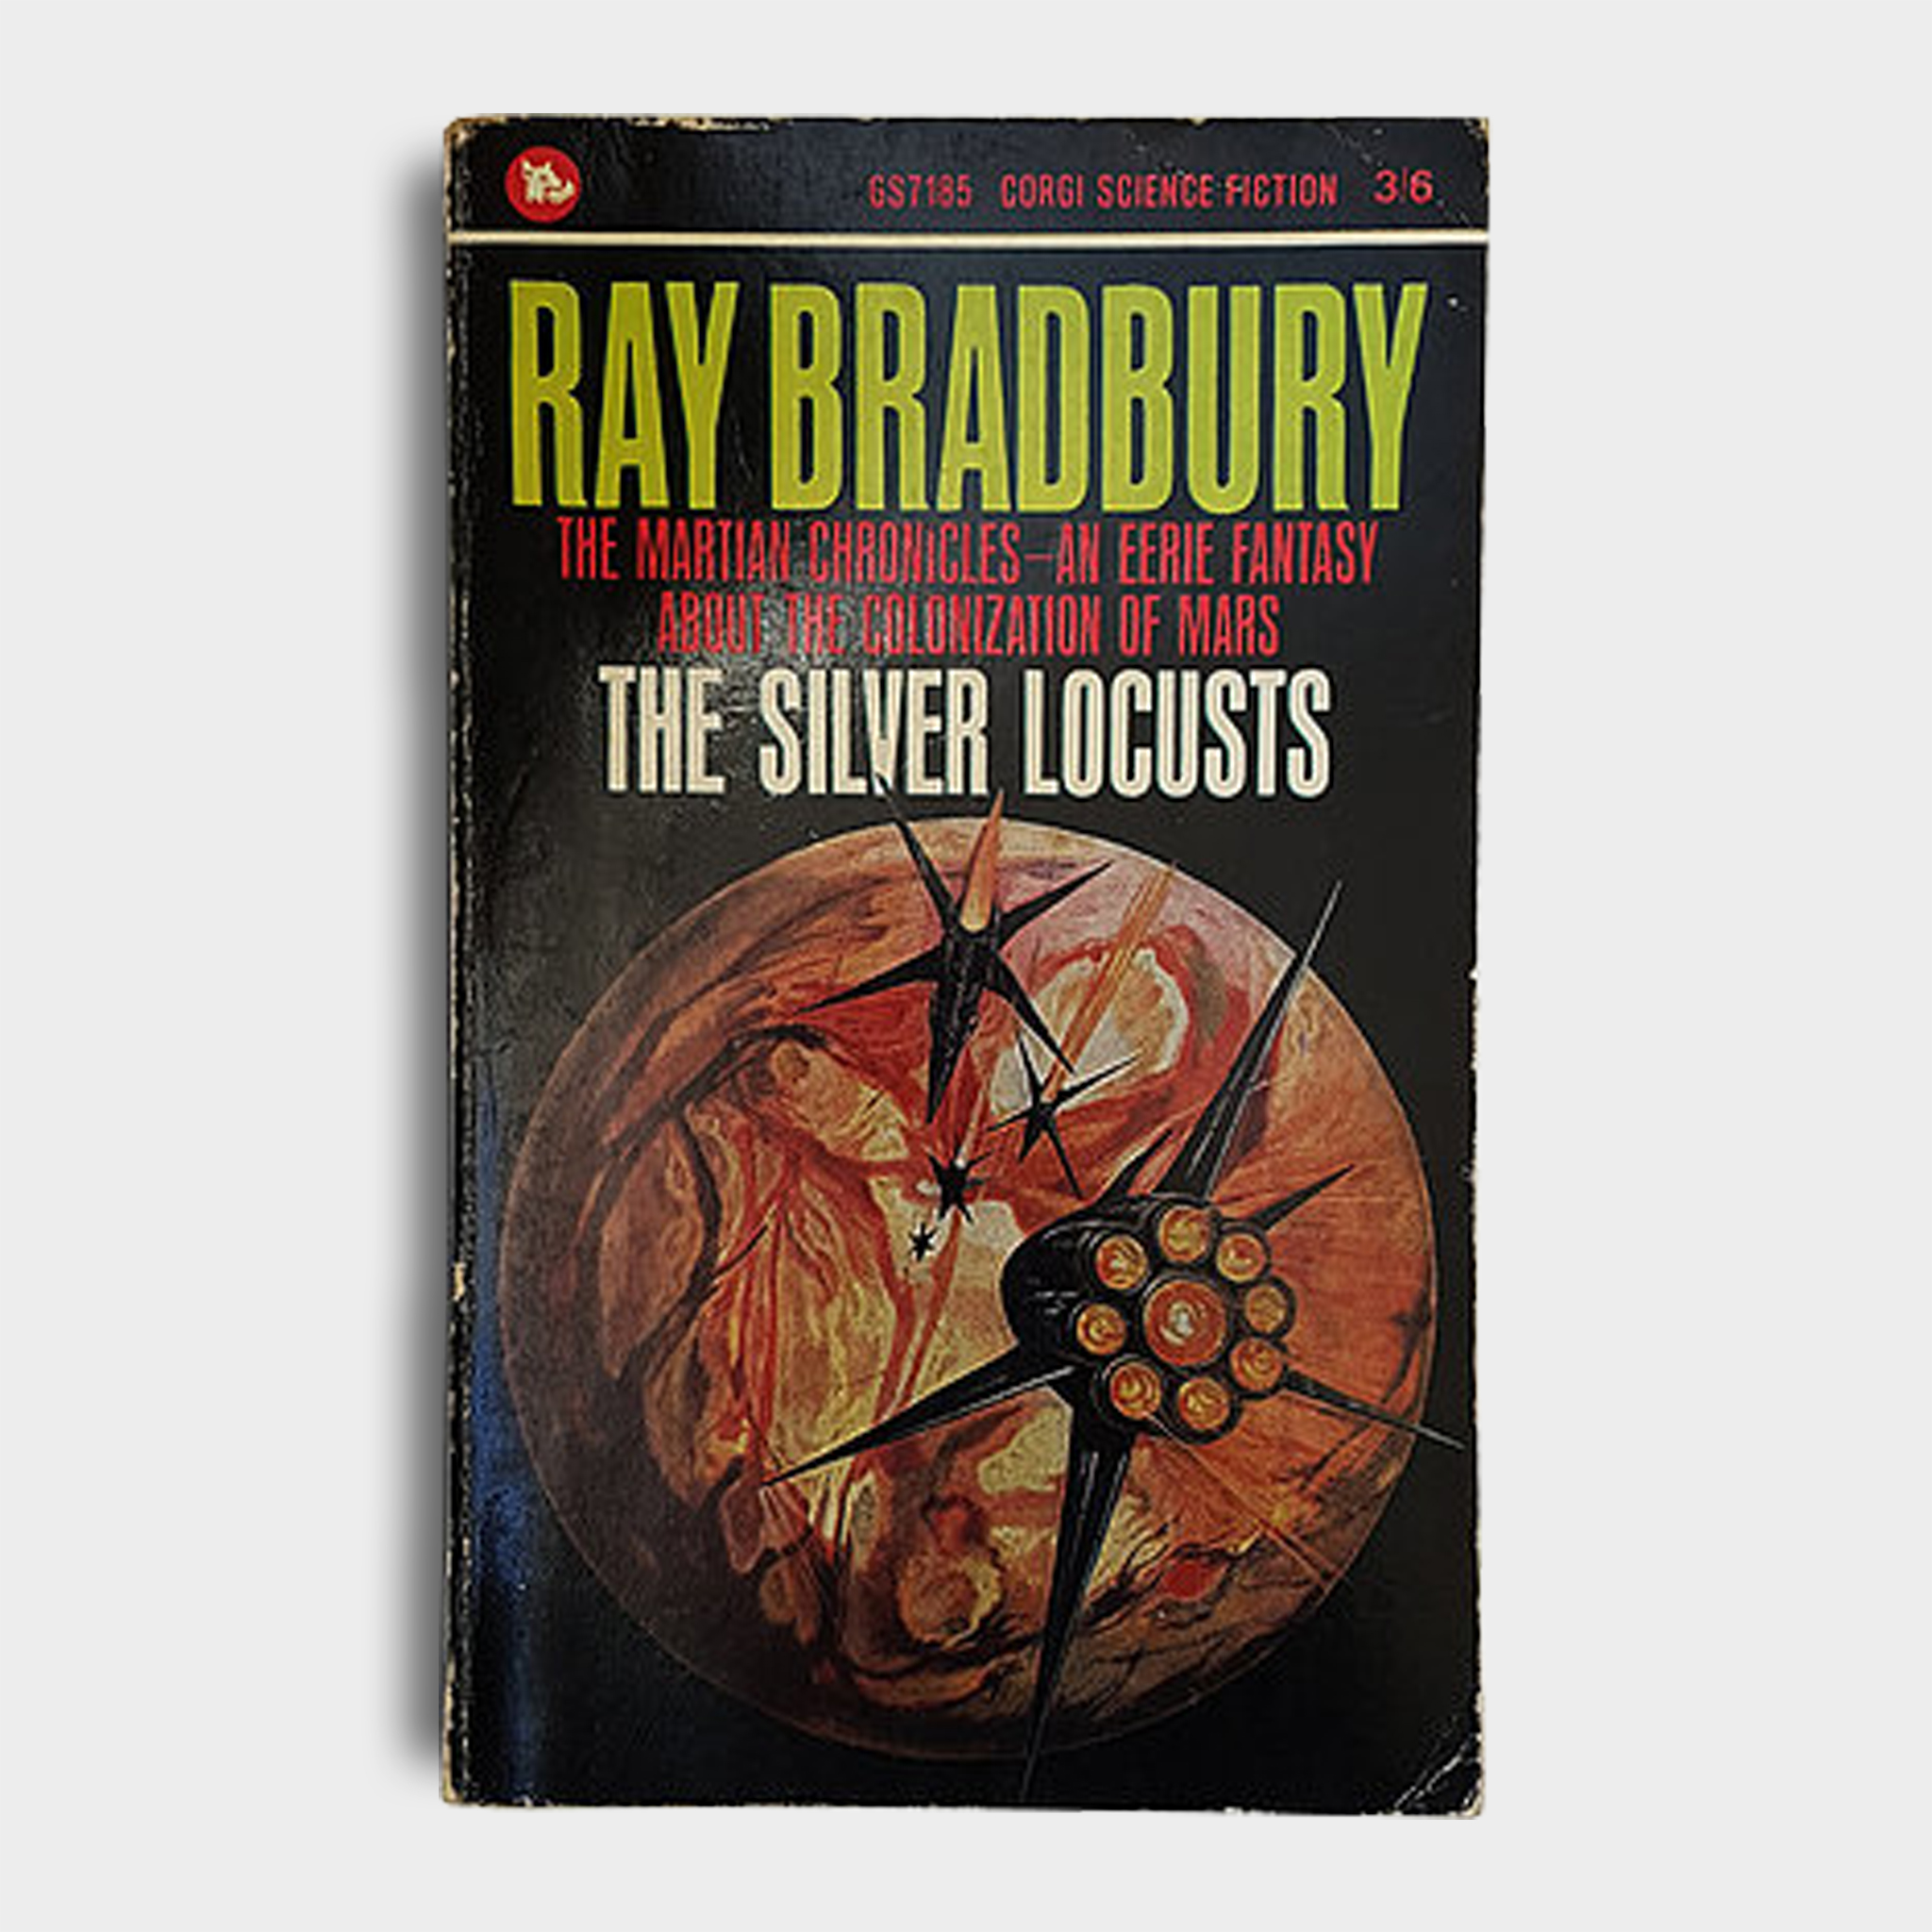 Ray Bradbury - The Silver Locusts